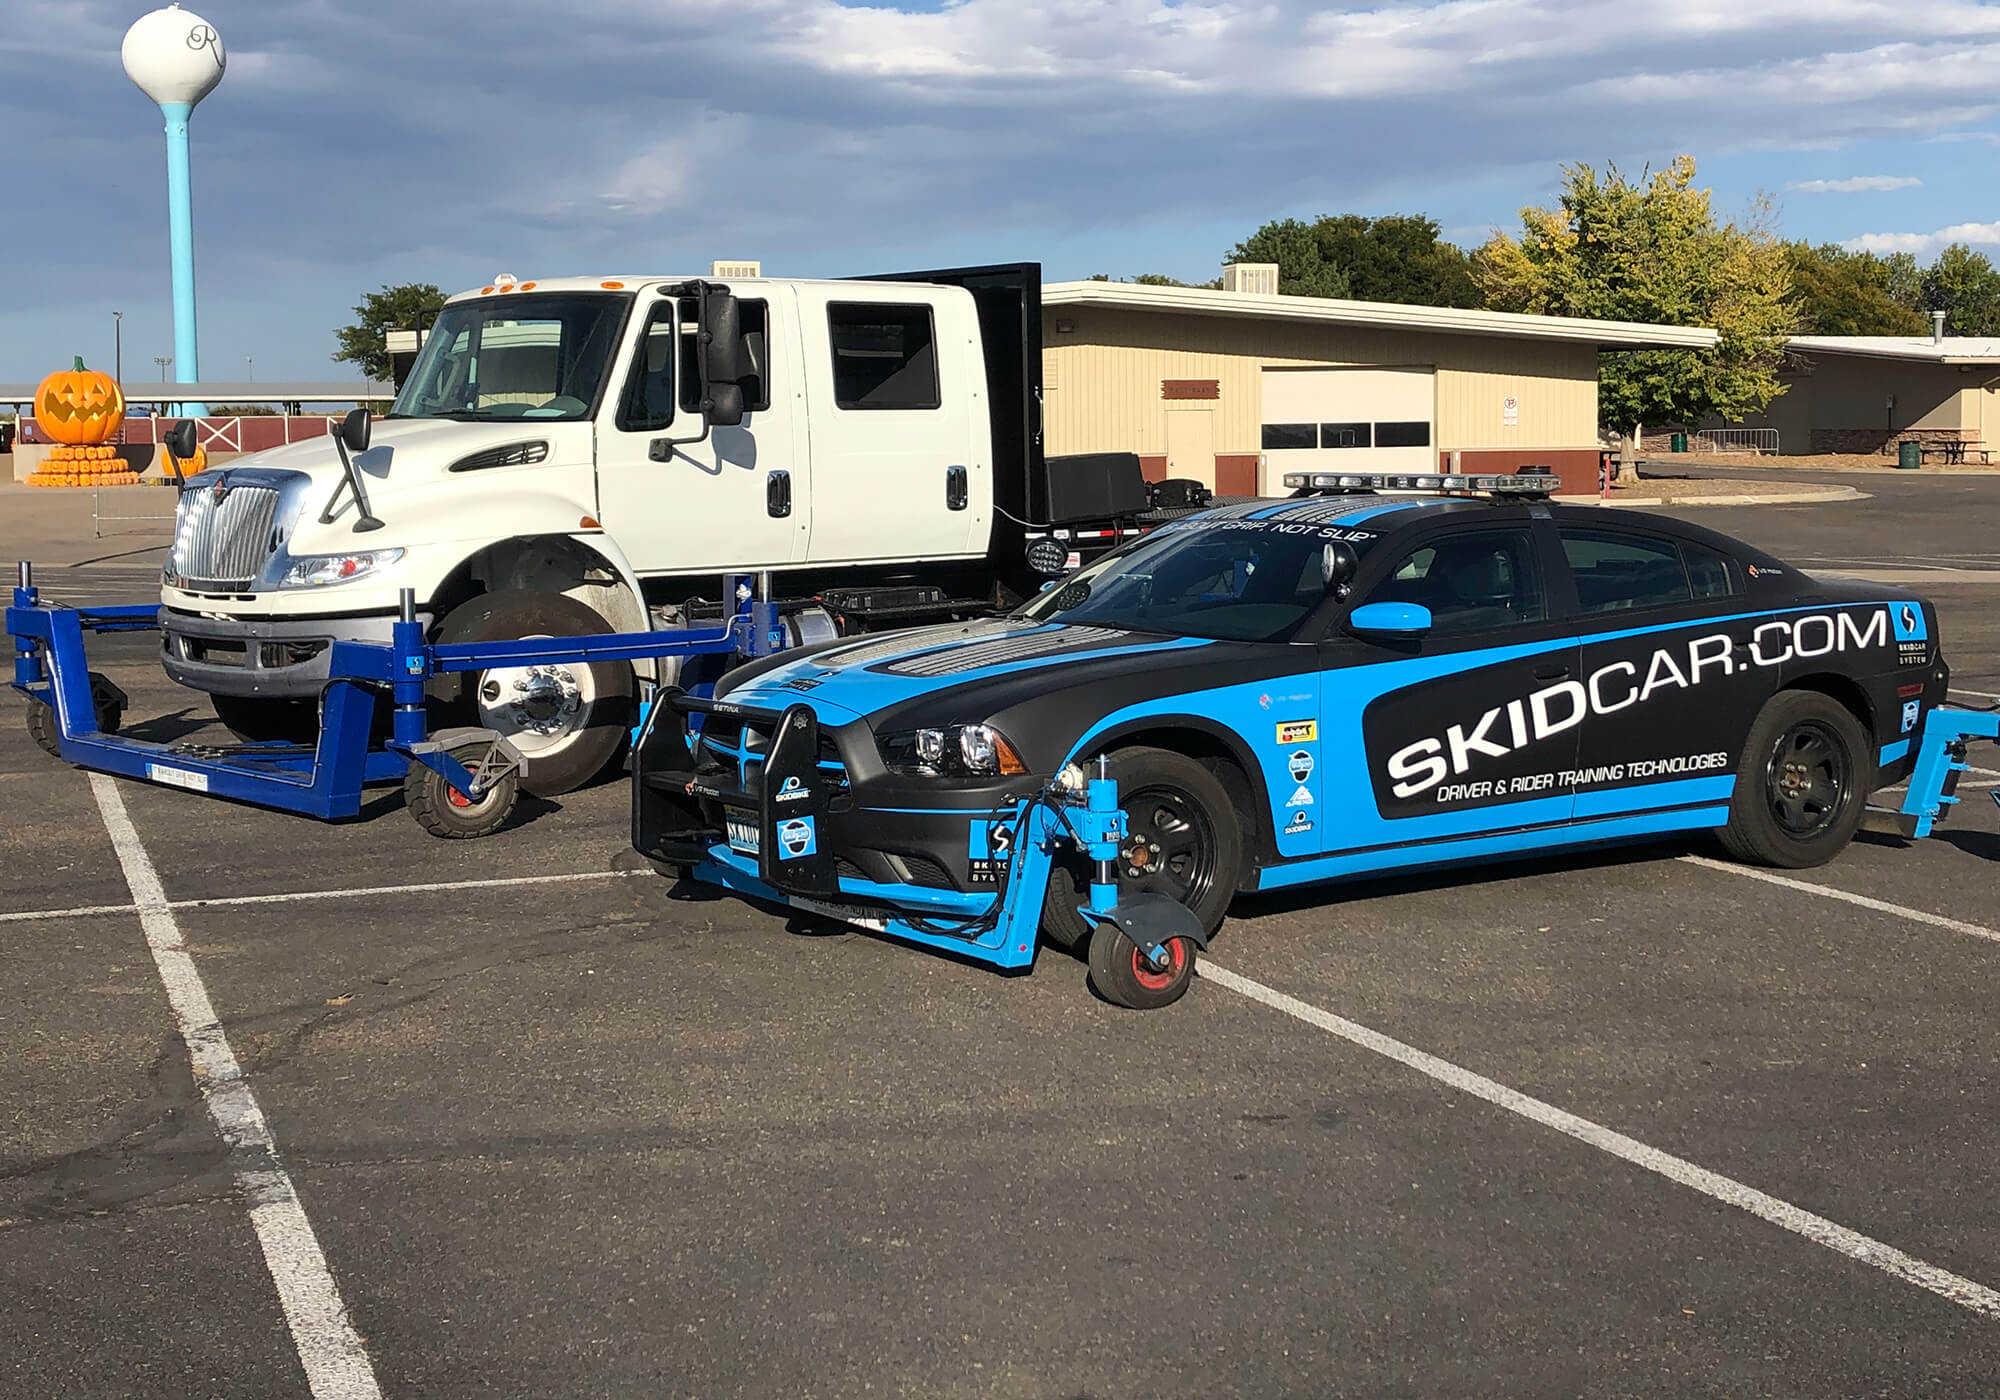 SKIDCAR and SKIDTRUCK in parking lot